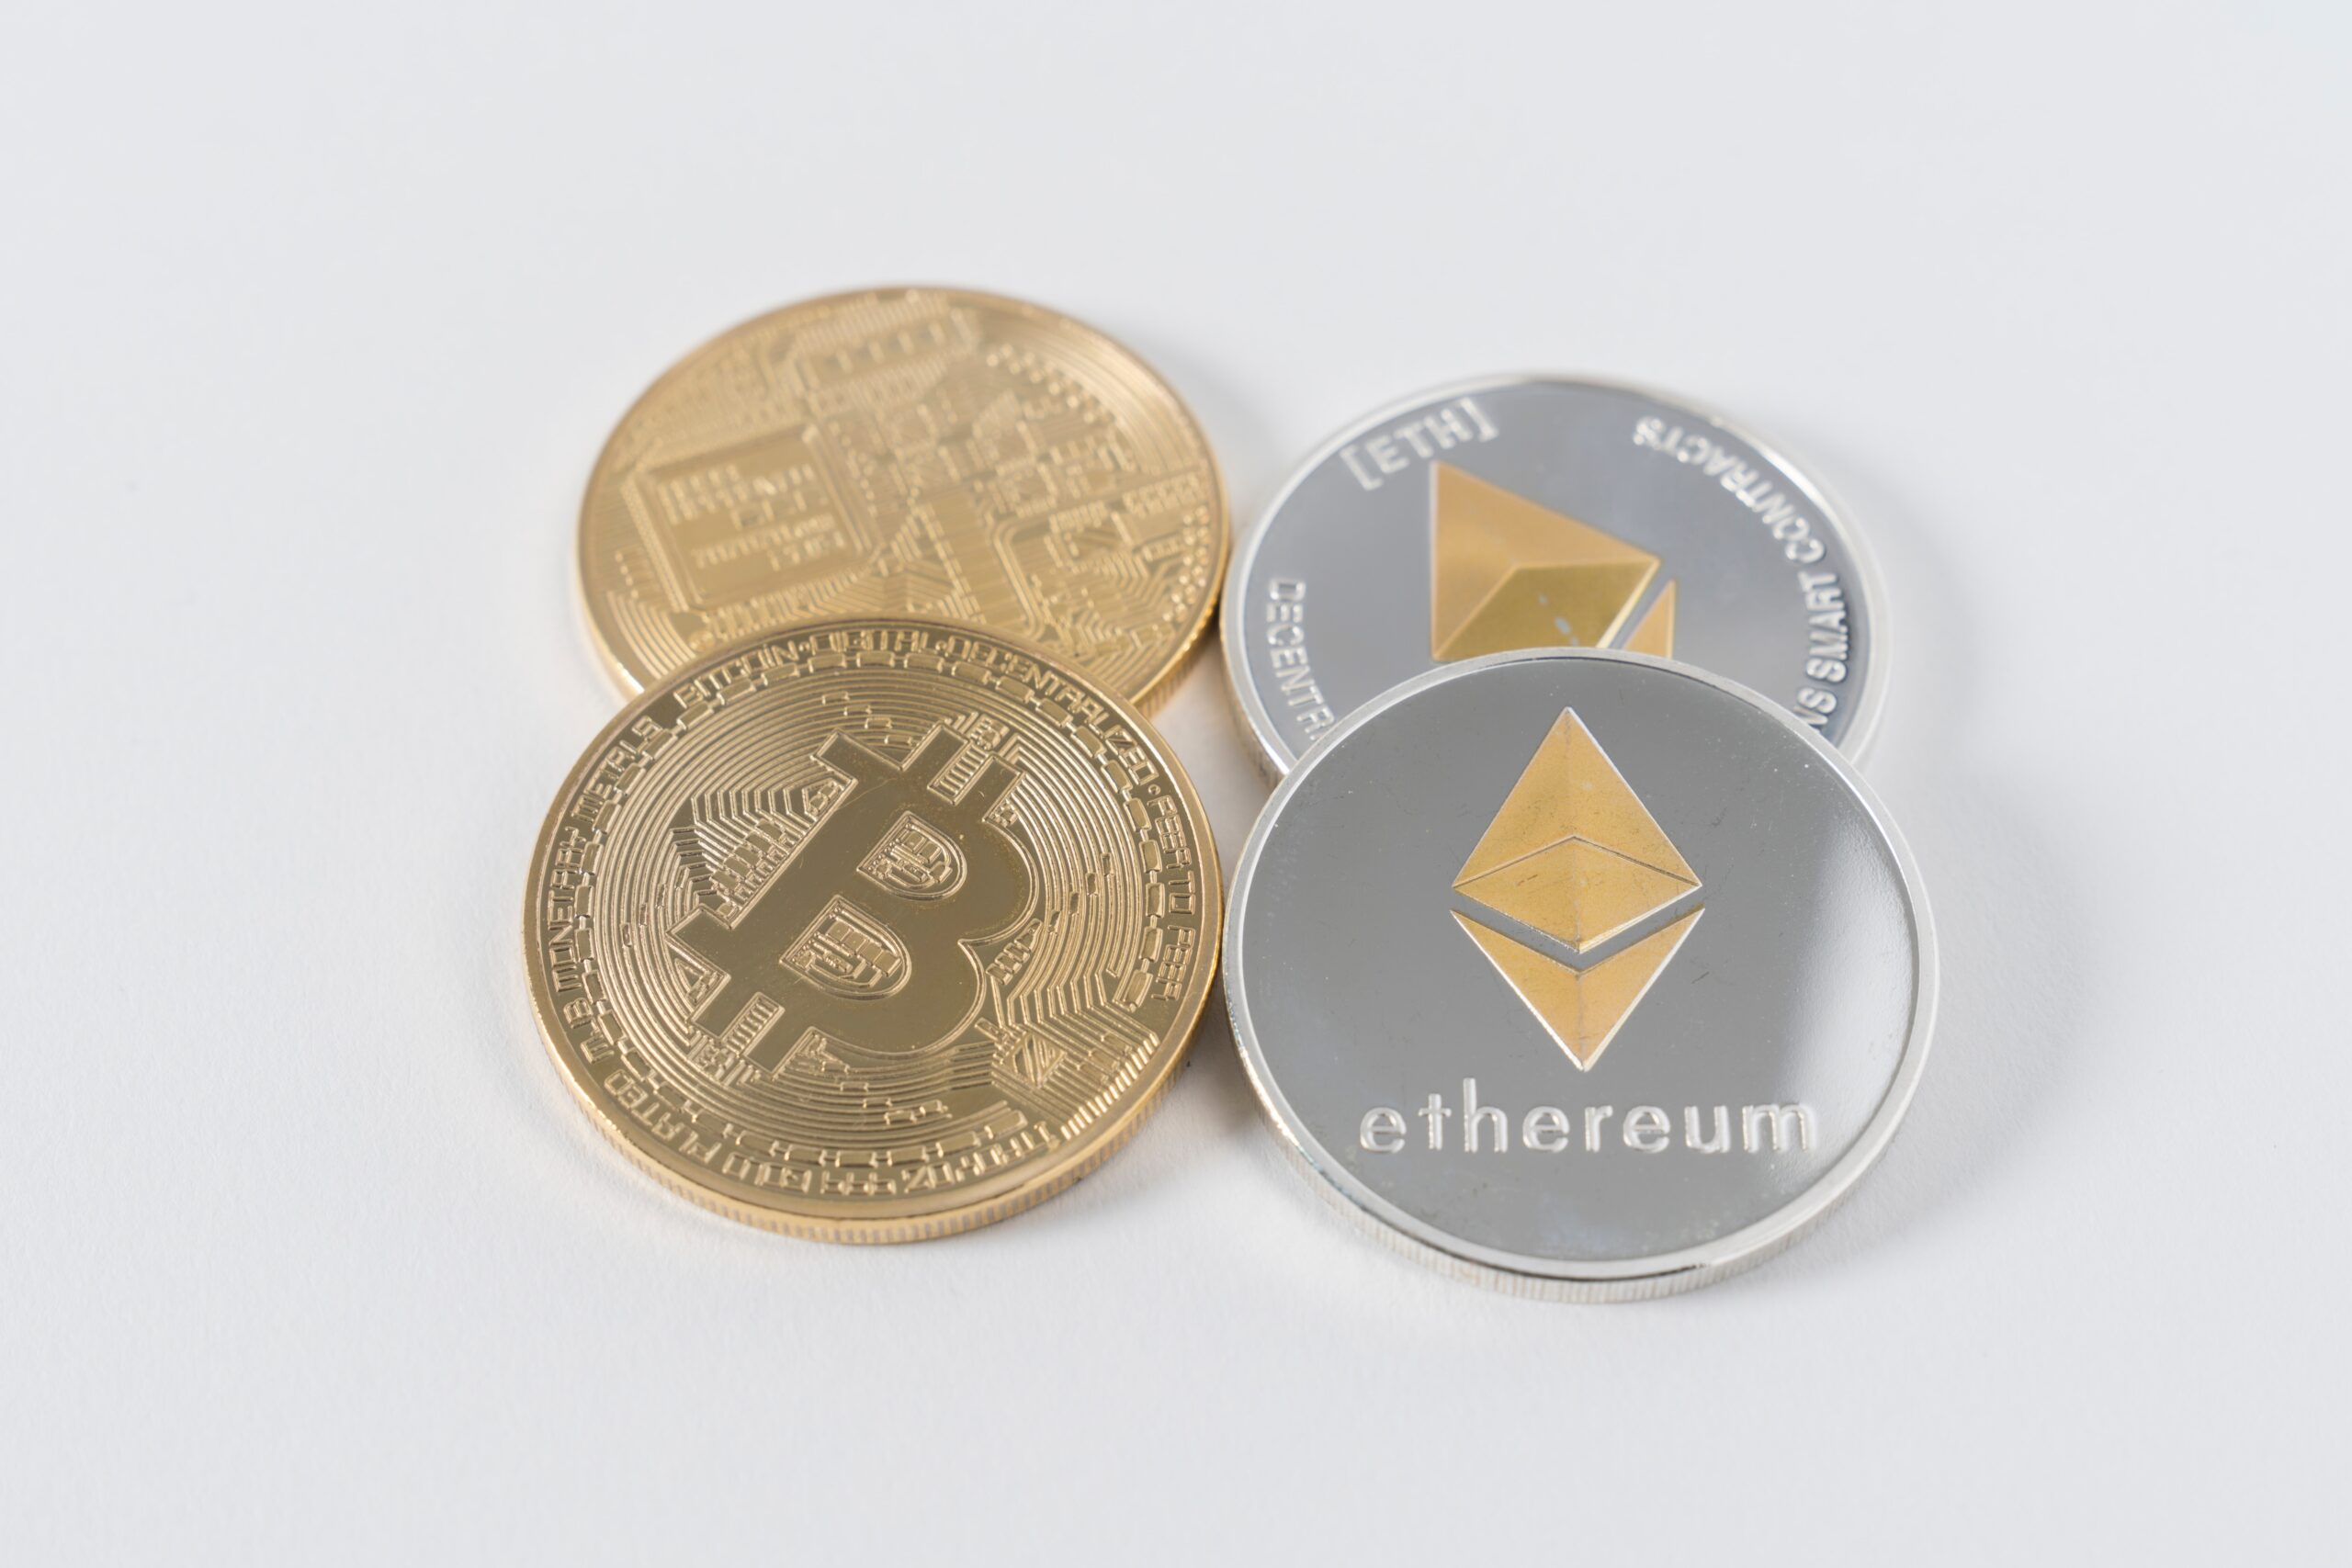 Ether price jumps to all-time high of $2,074